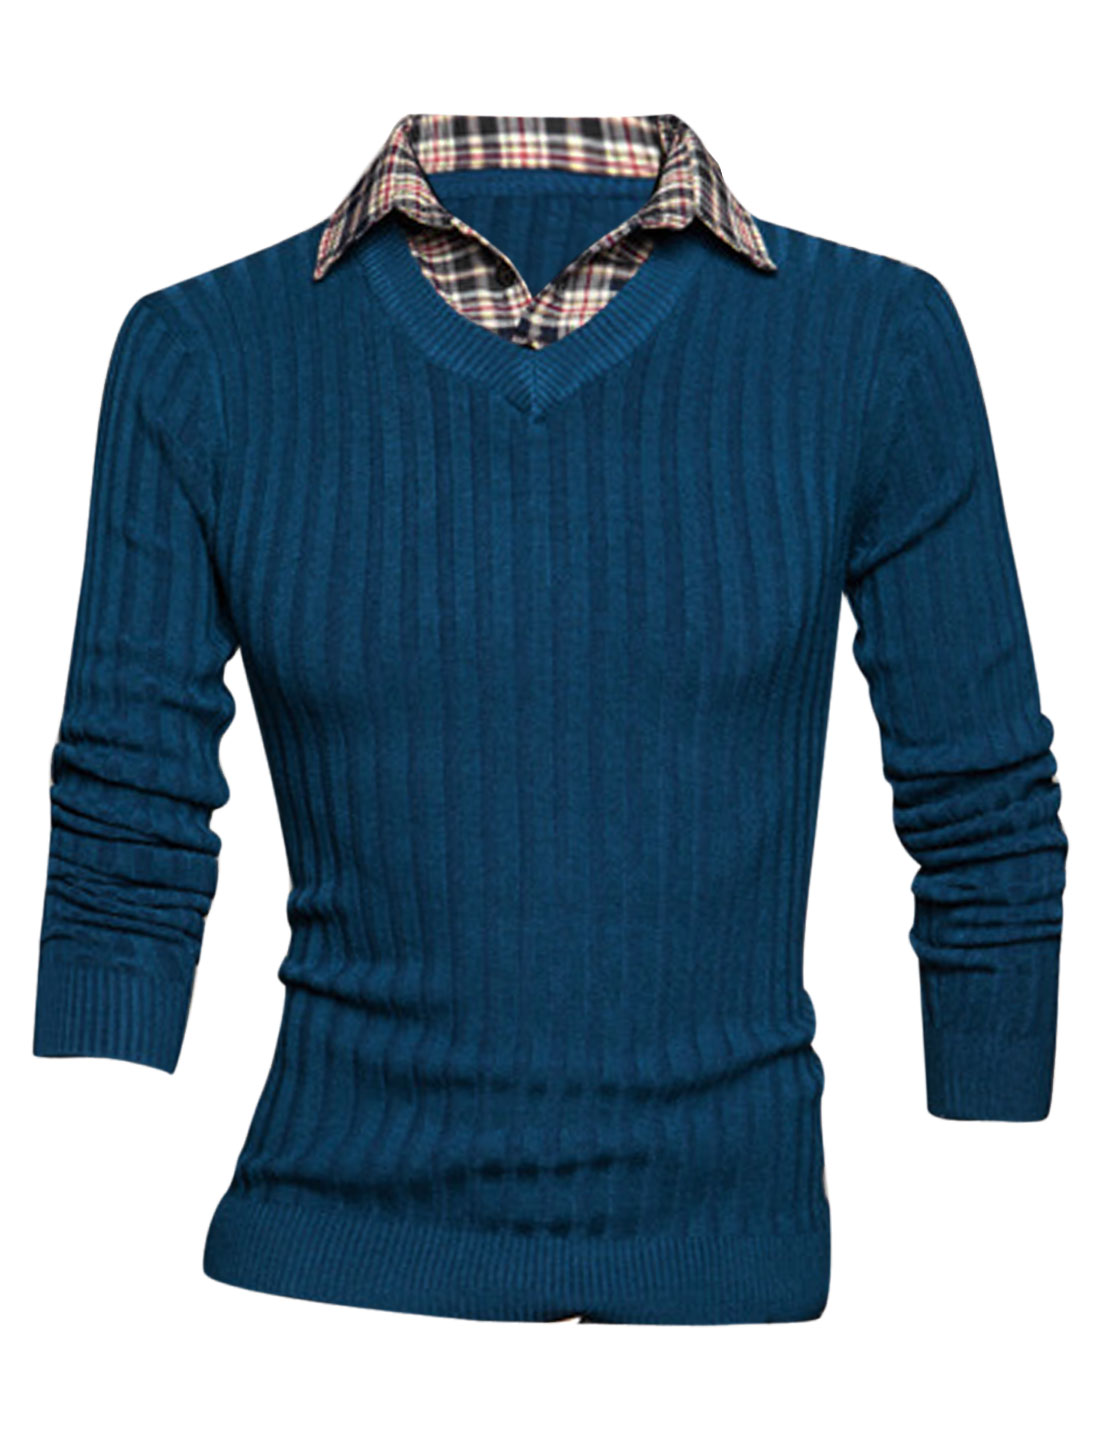 Men Layered Designs Stitched Design Pullover Knit Shirt Sea Blue M